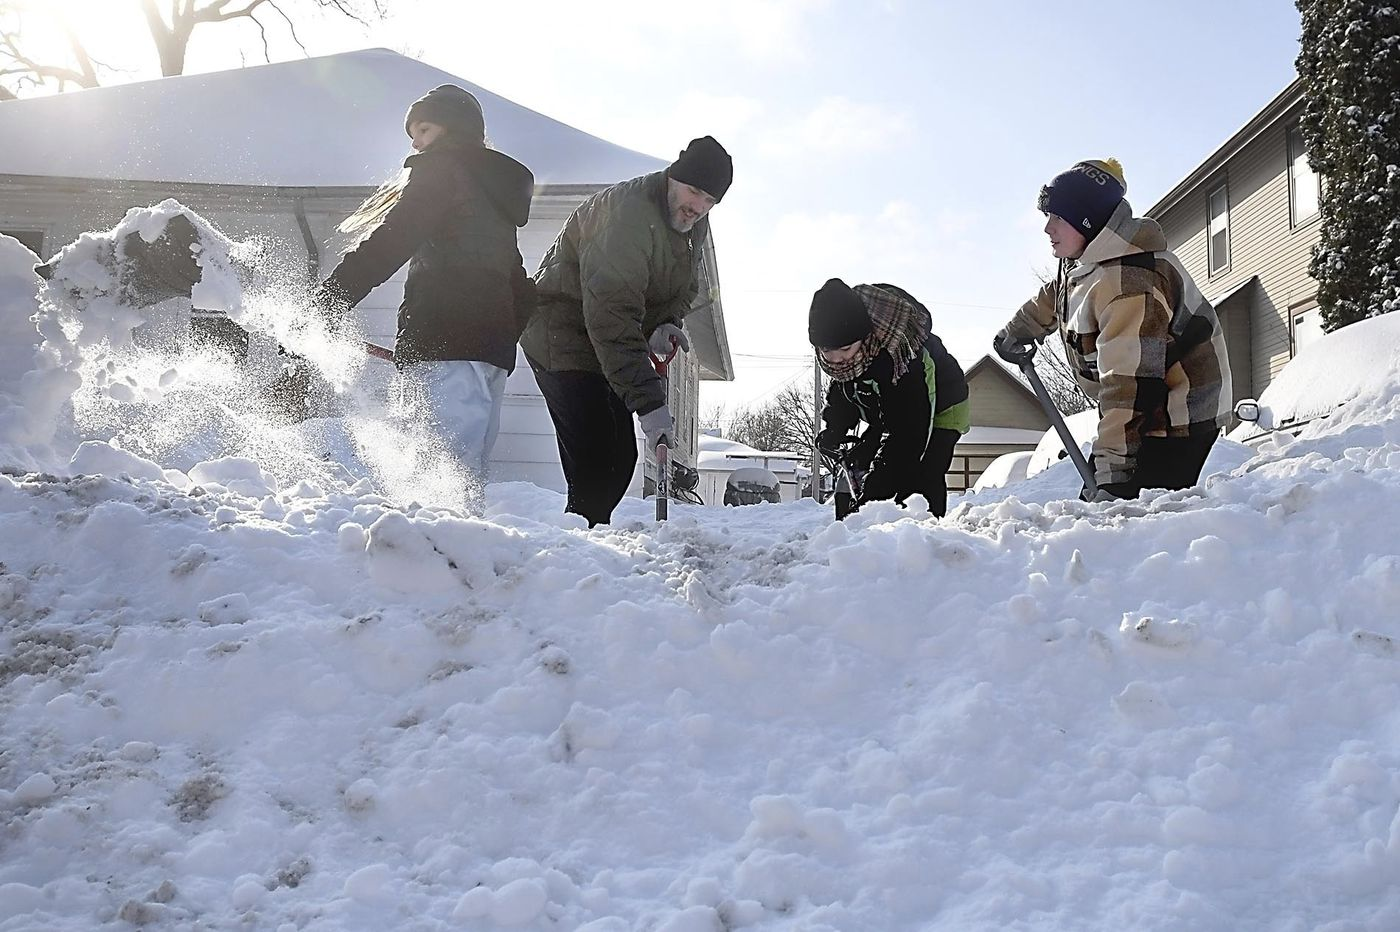 Polar Vortex Brings Record-Breaking Deep Freeze to Midwest